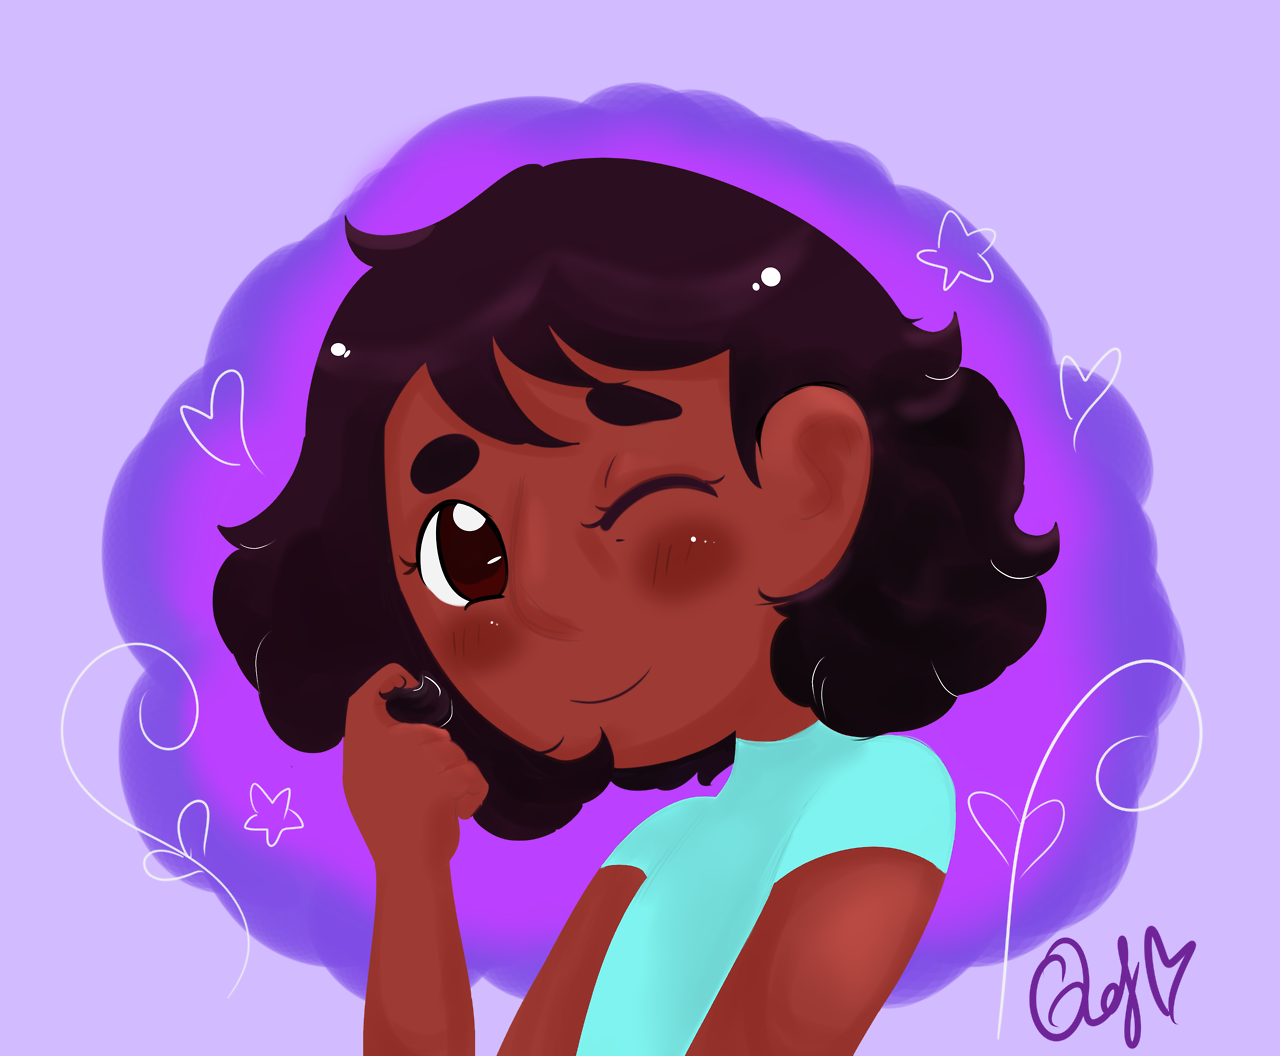 So… Connie looks really cute with short hair, just sayin'.